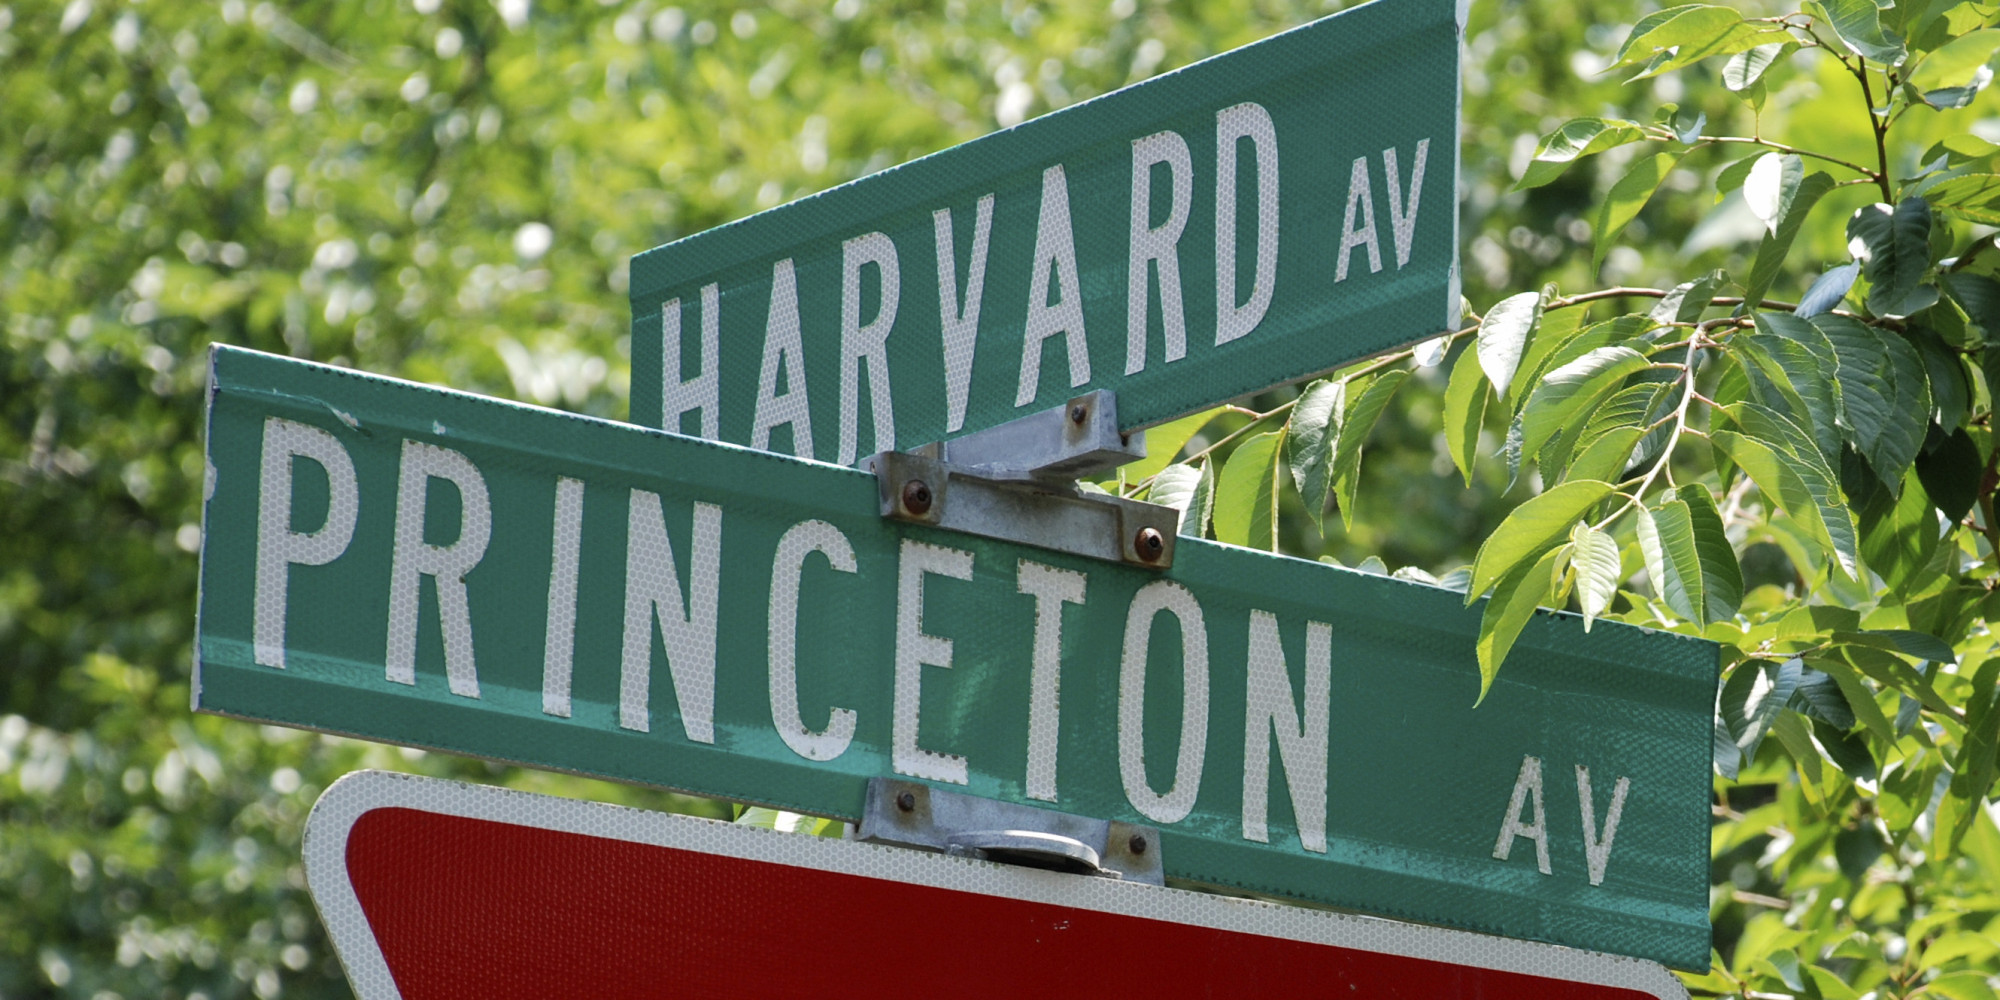 Sign of Harvard and Princeton Ave